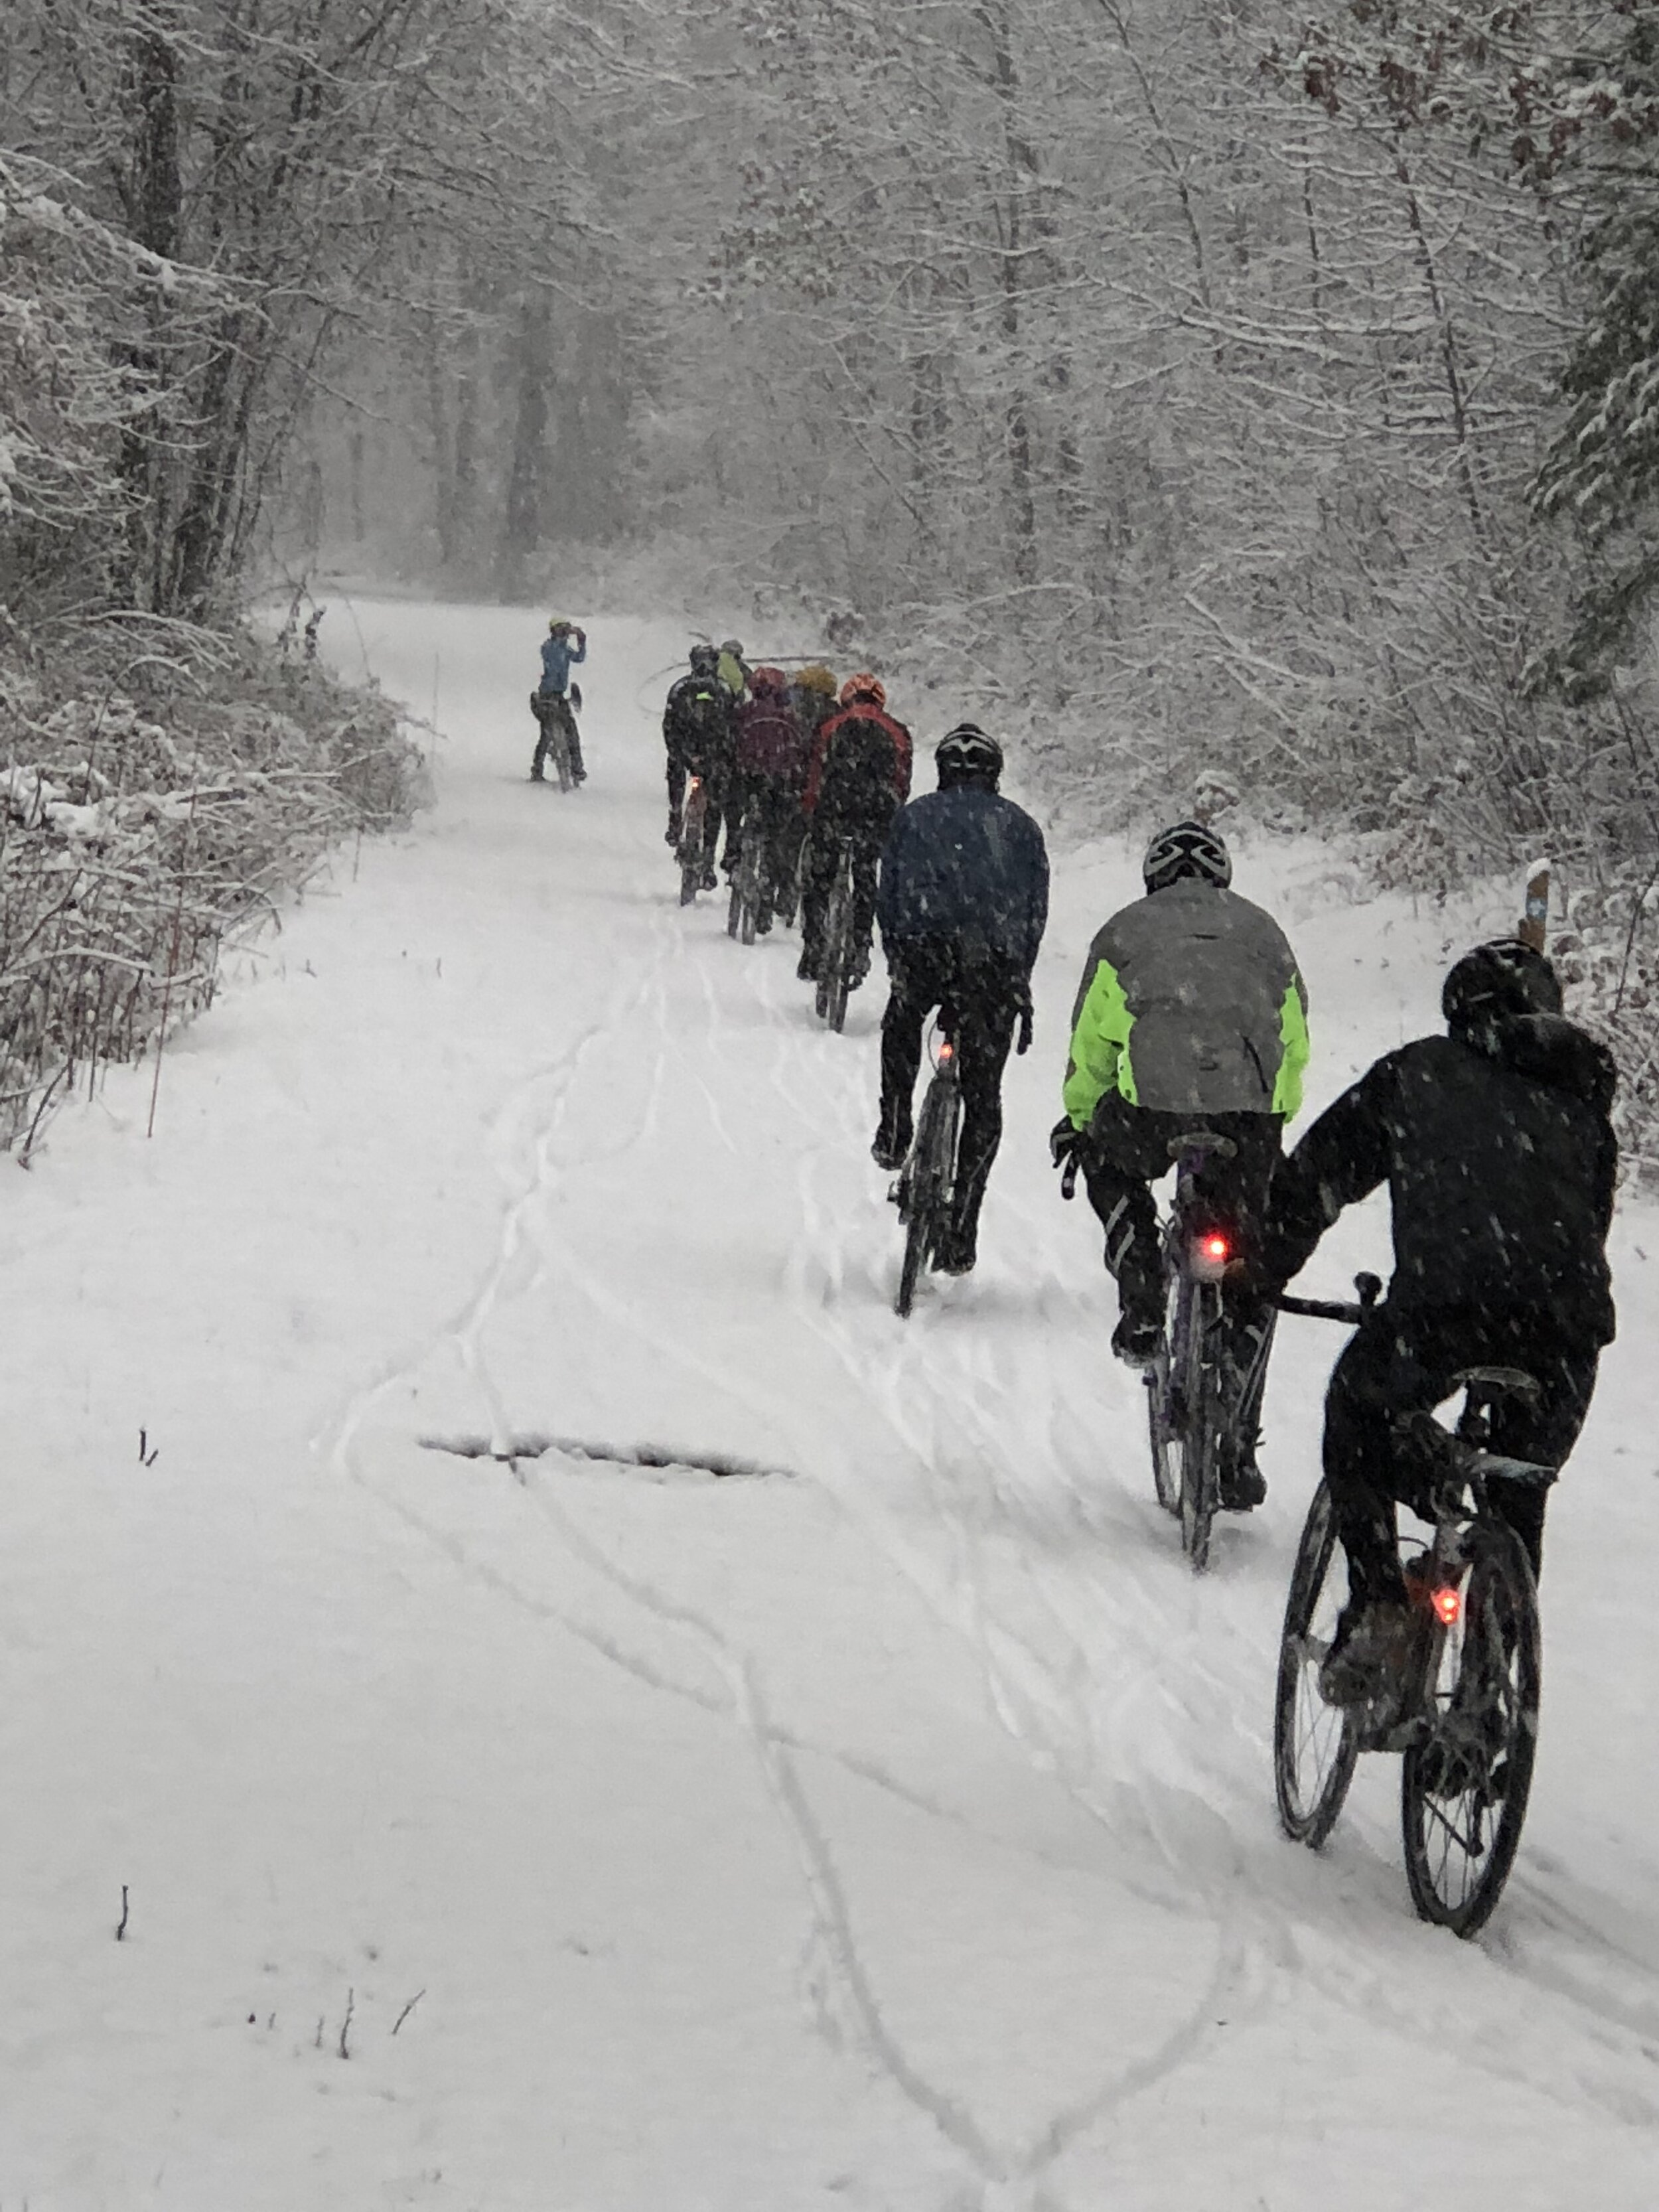 There are a lot of winter riders; you're in good company with others who recognize the myriad reasons for staying outside all winter.